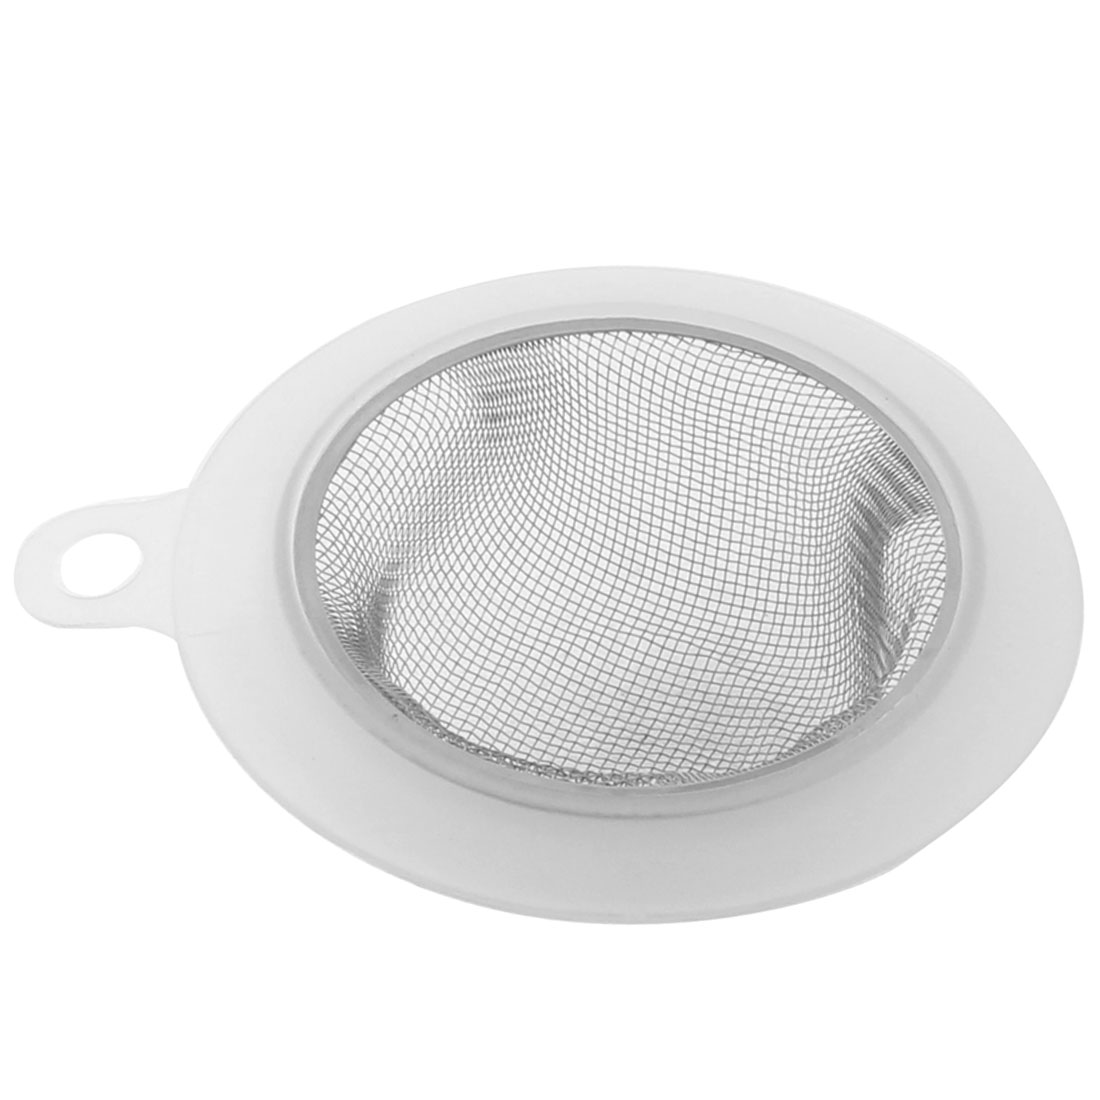 9cm Dia Home Kitchen Sink Basin Drain Waste Filter Strainer Silver Tone Clear